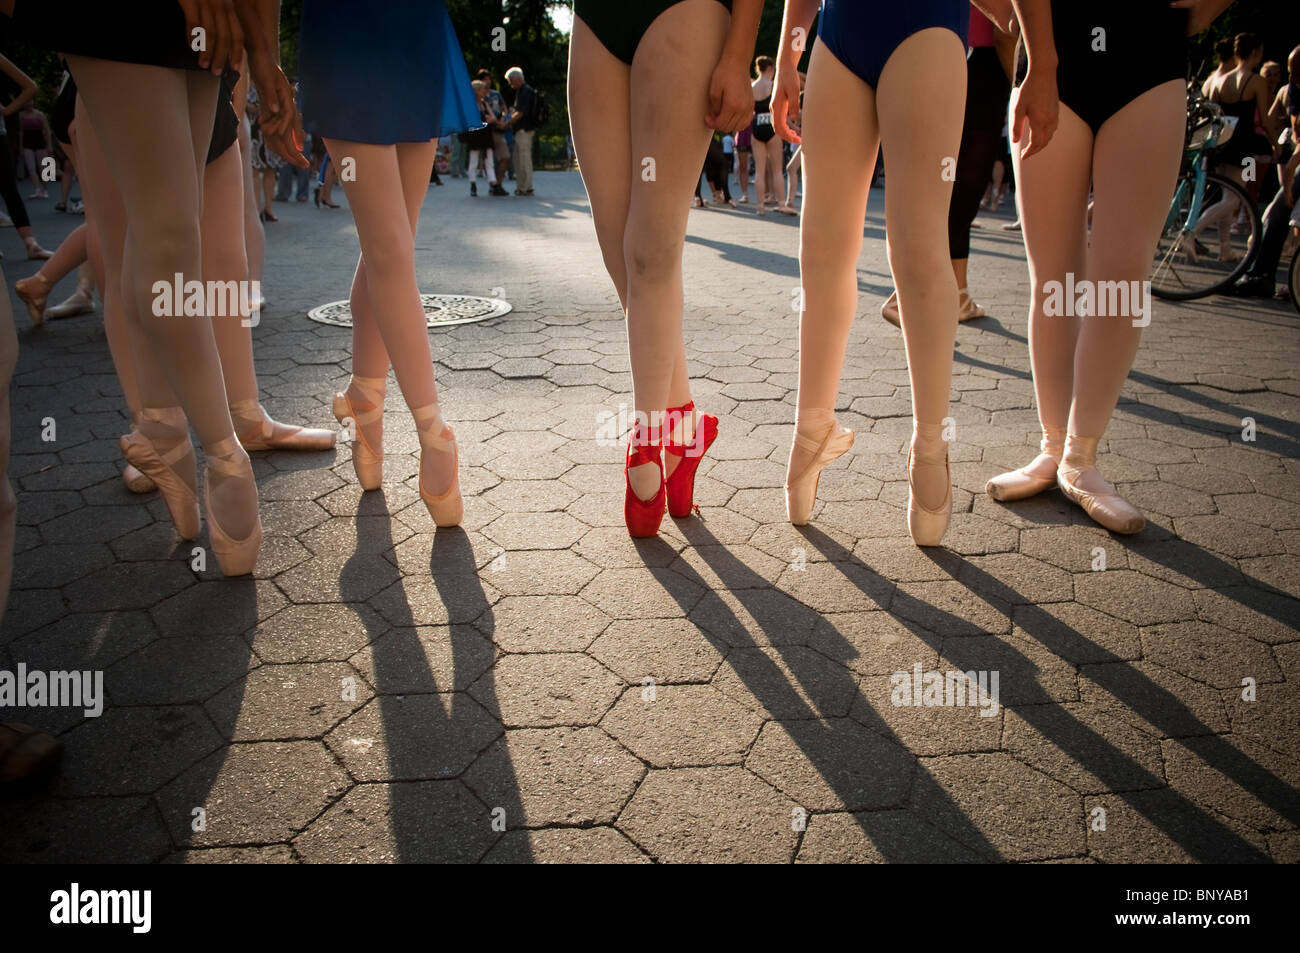 Hundreds of ballerinas gather in Central Park in New York for the the 'Most Ballerinas En Pointe'. - Stock Image